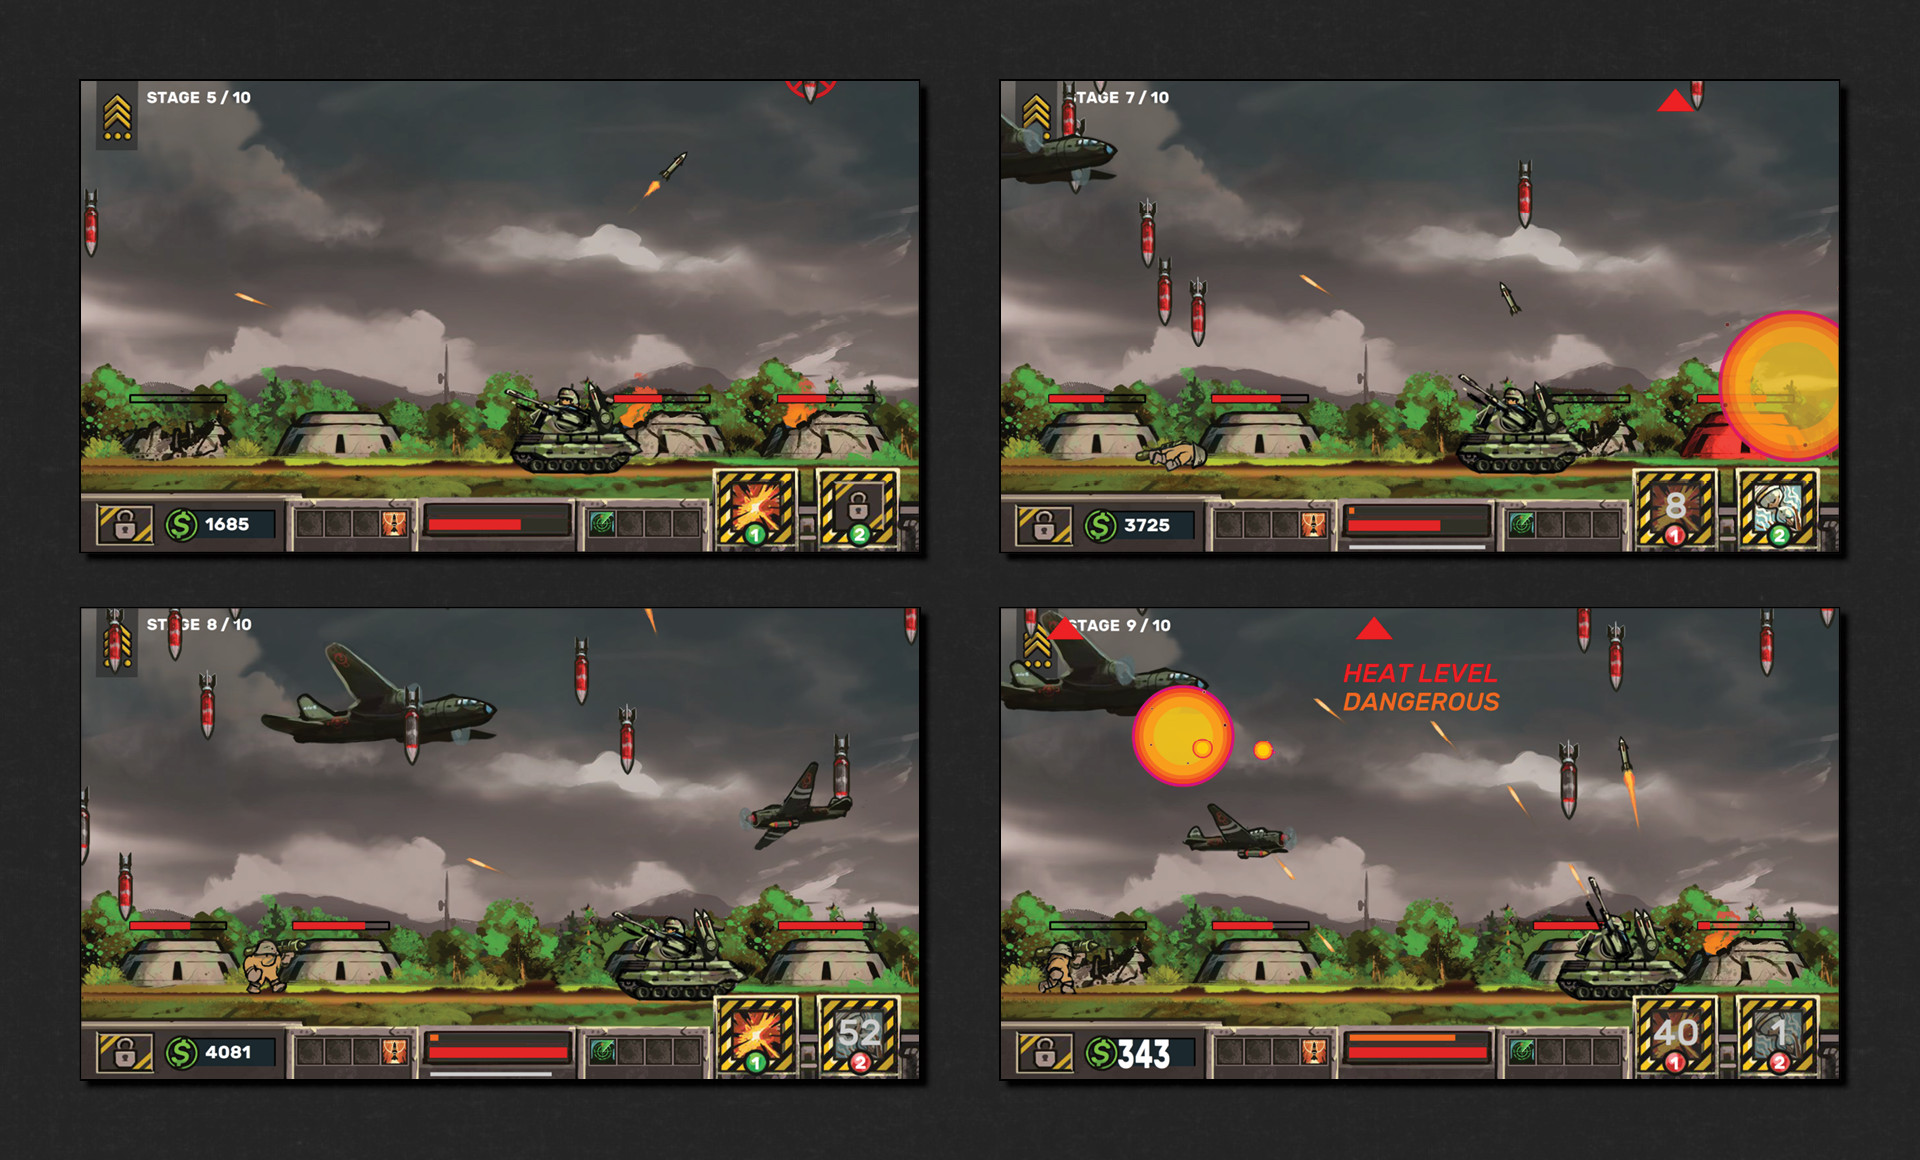 More combat demonstration, featuring new enemies and some combat mechanics, such as heat generation through shooting,  which in excess will cause your guns to temporarily lock down into cooling down if you're not careful.